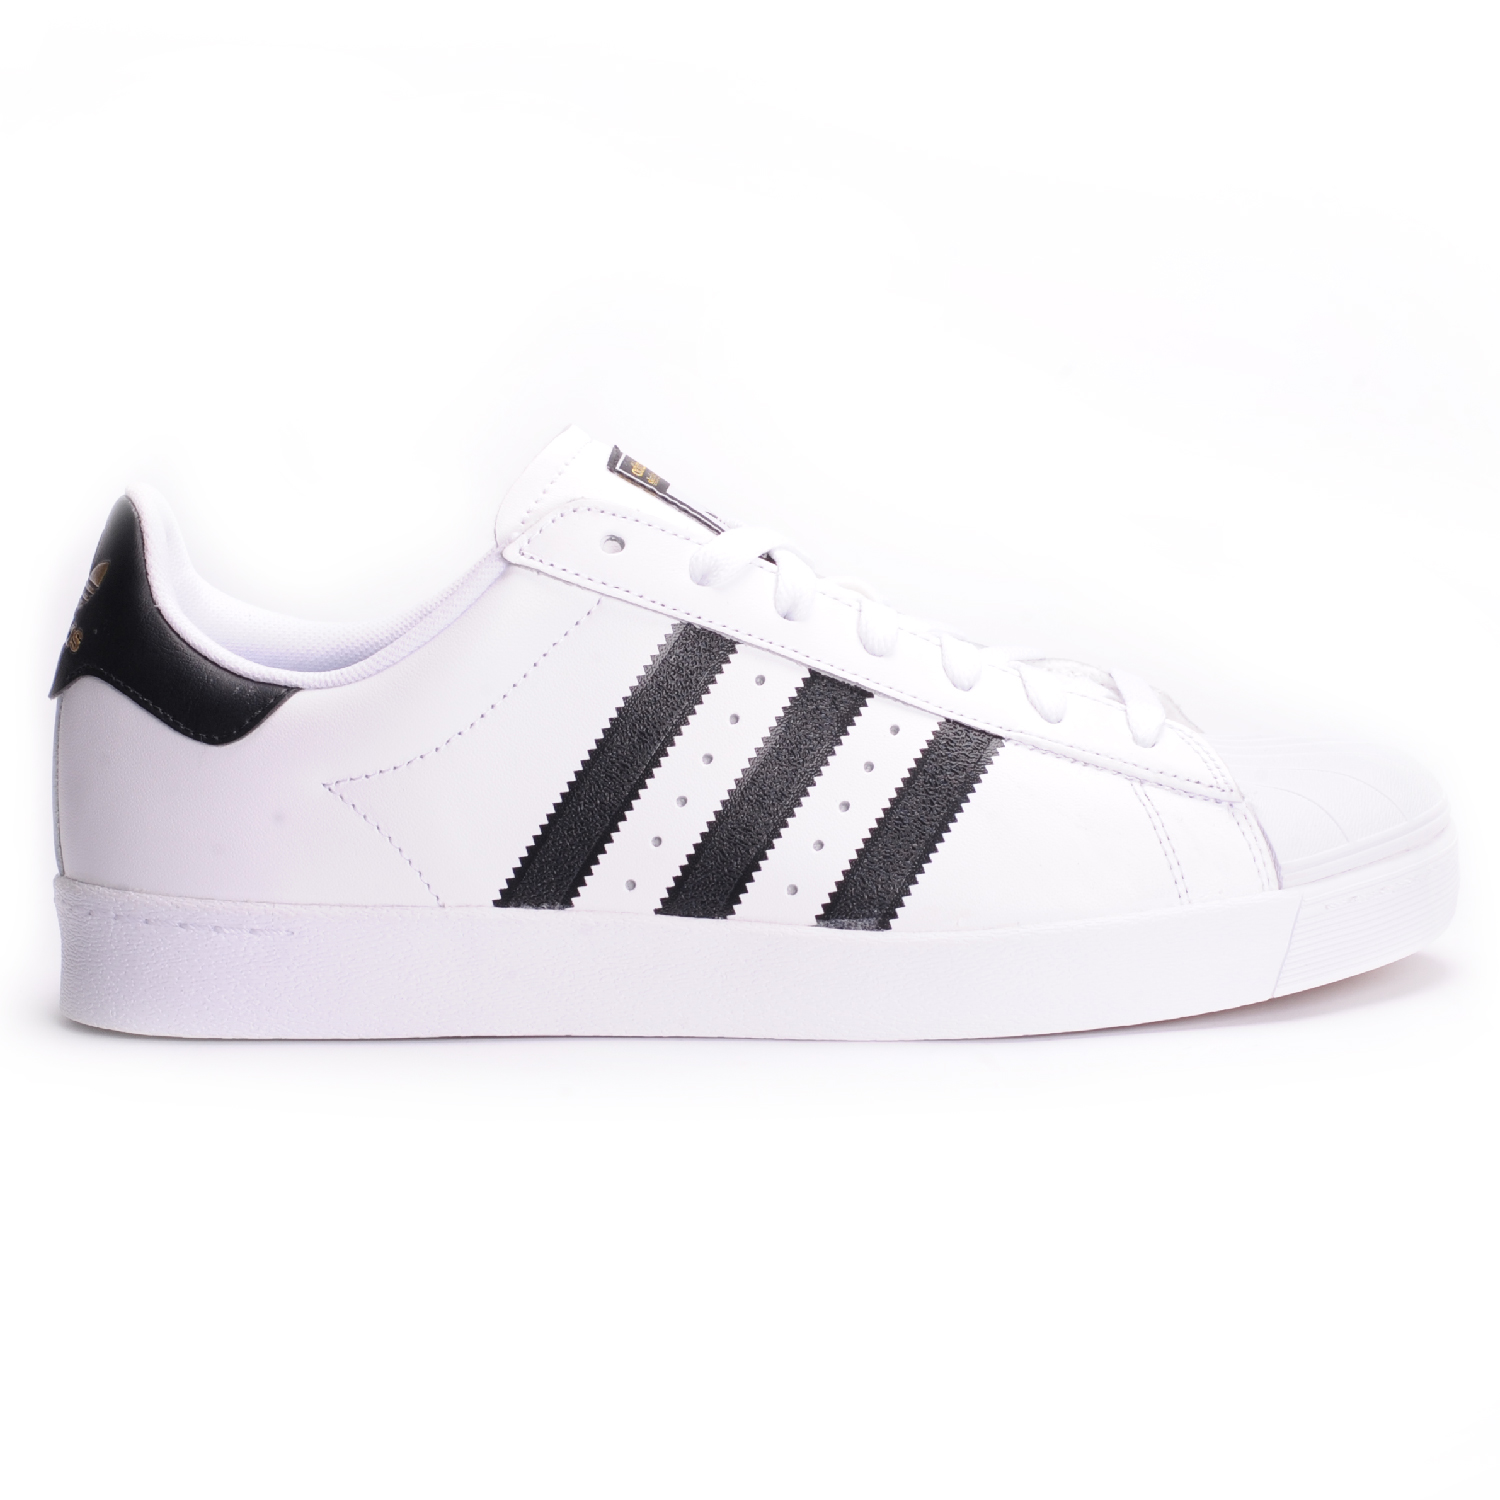 Cheap Adidas Superstar Vulc Adv Black White Hers trainers Office